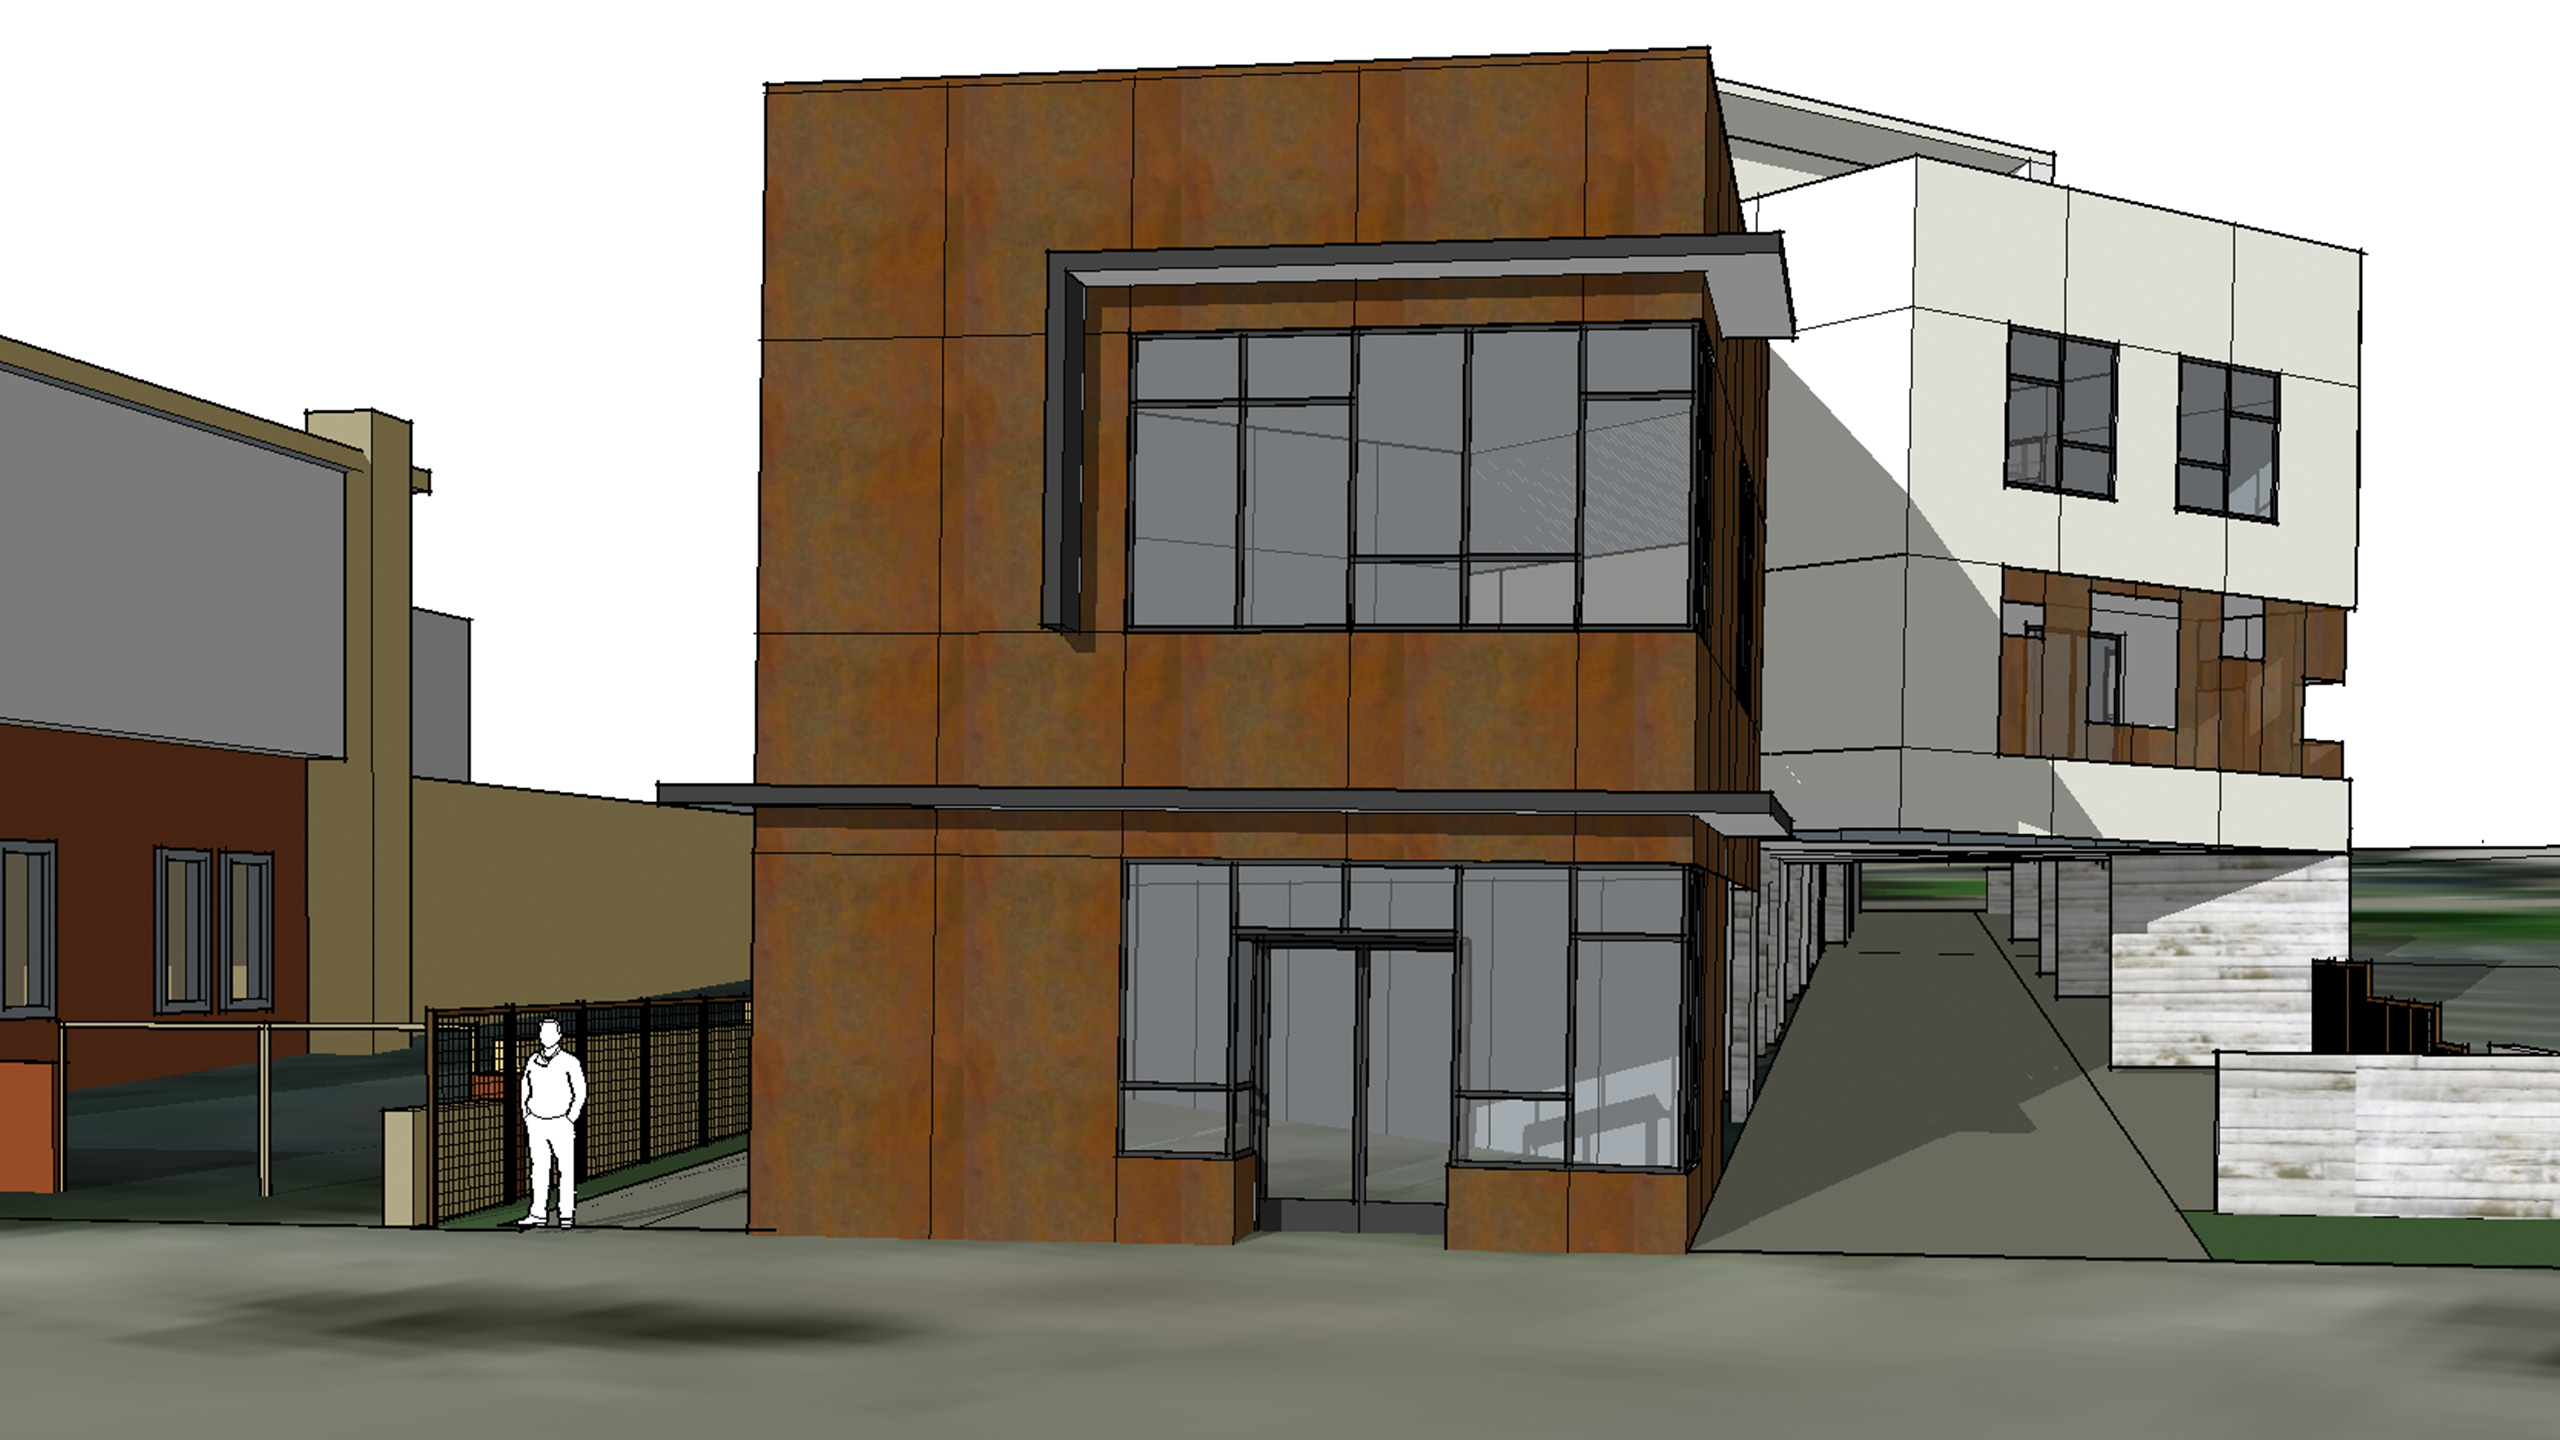 Net-Zero-Multifamily-Sonoma-County-Liberty-Lofts-exterior-view-of-modern-design